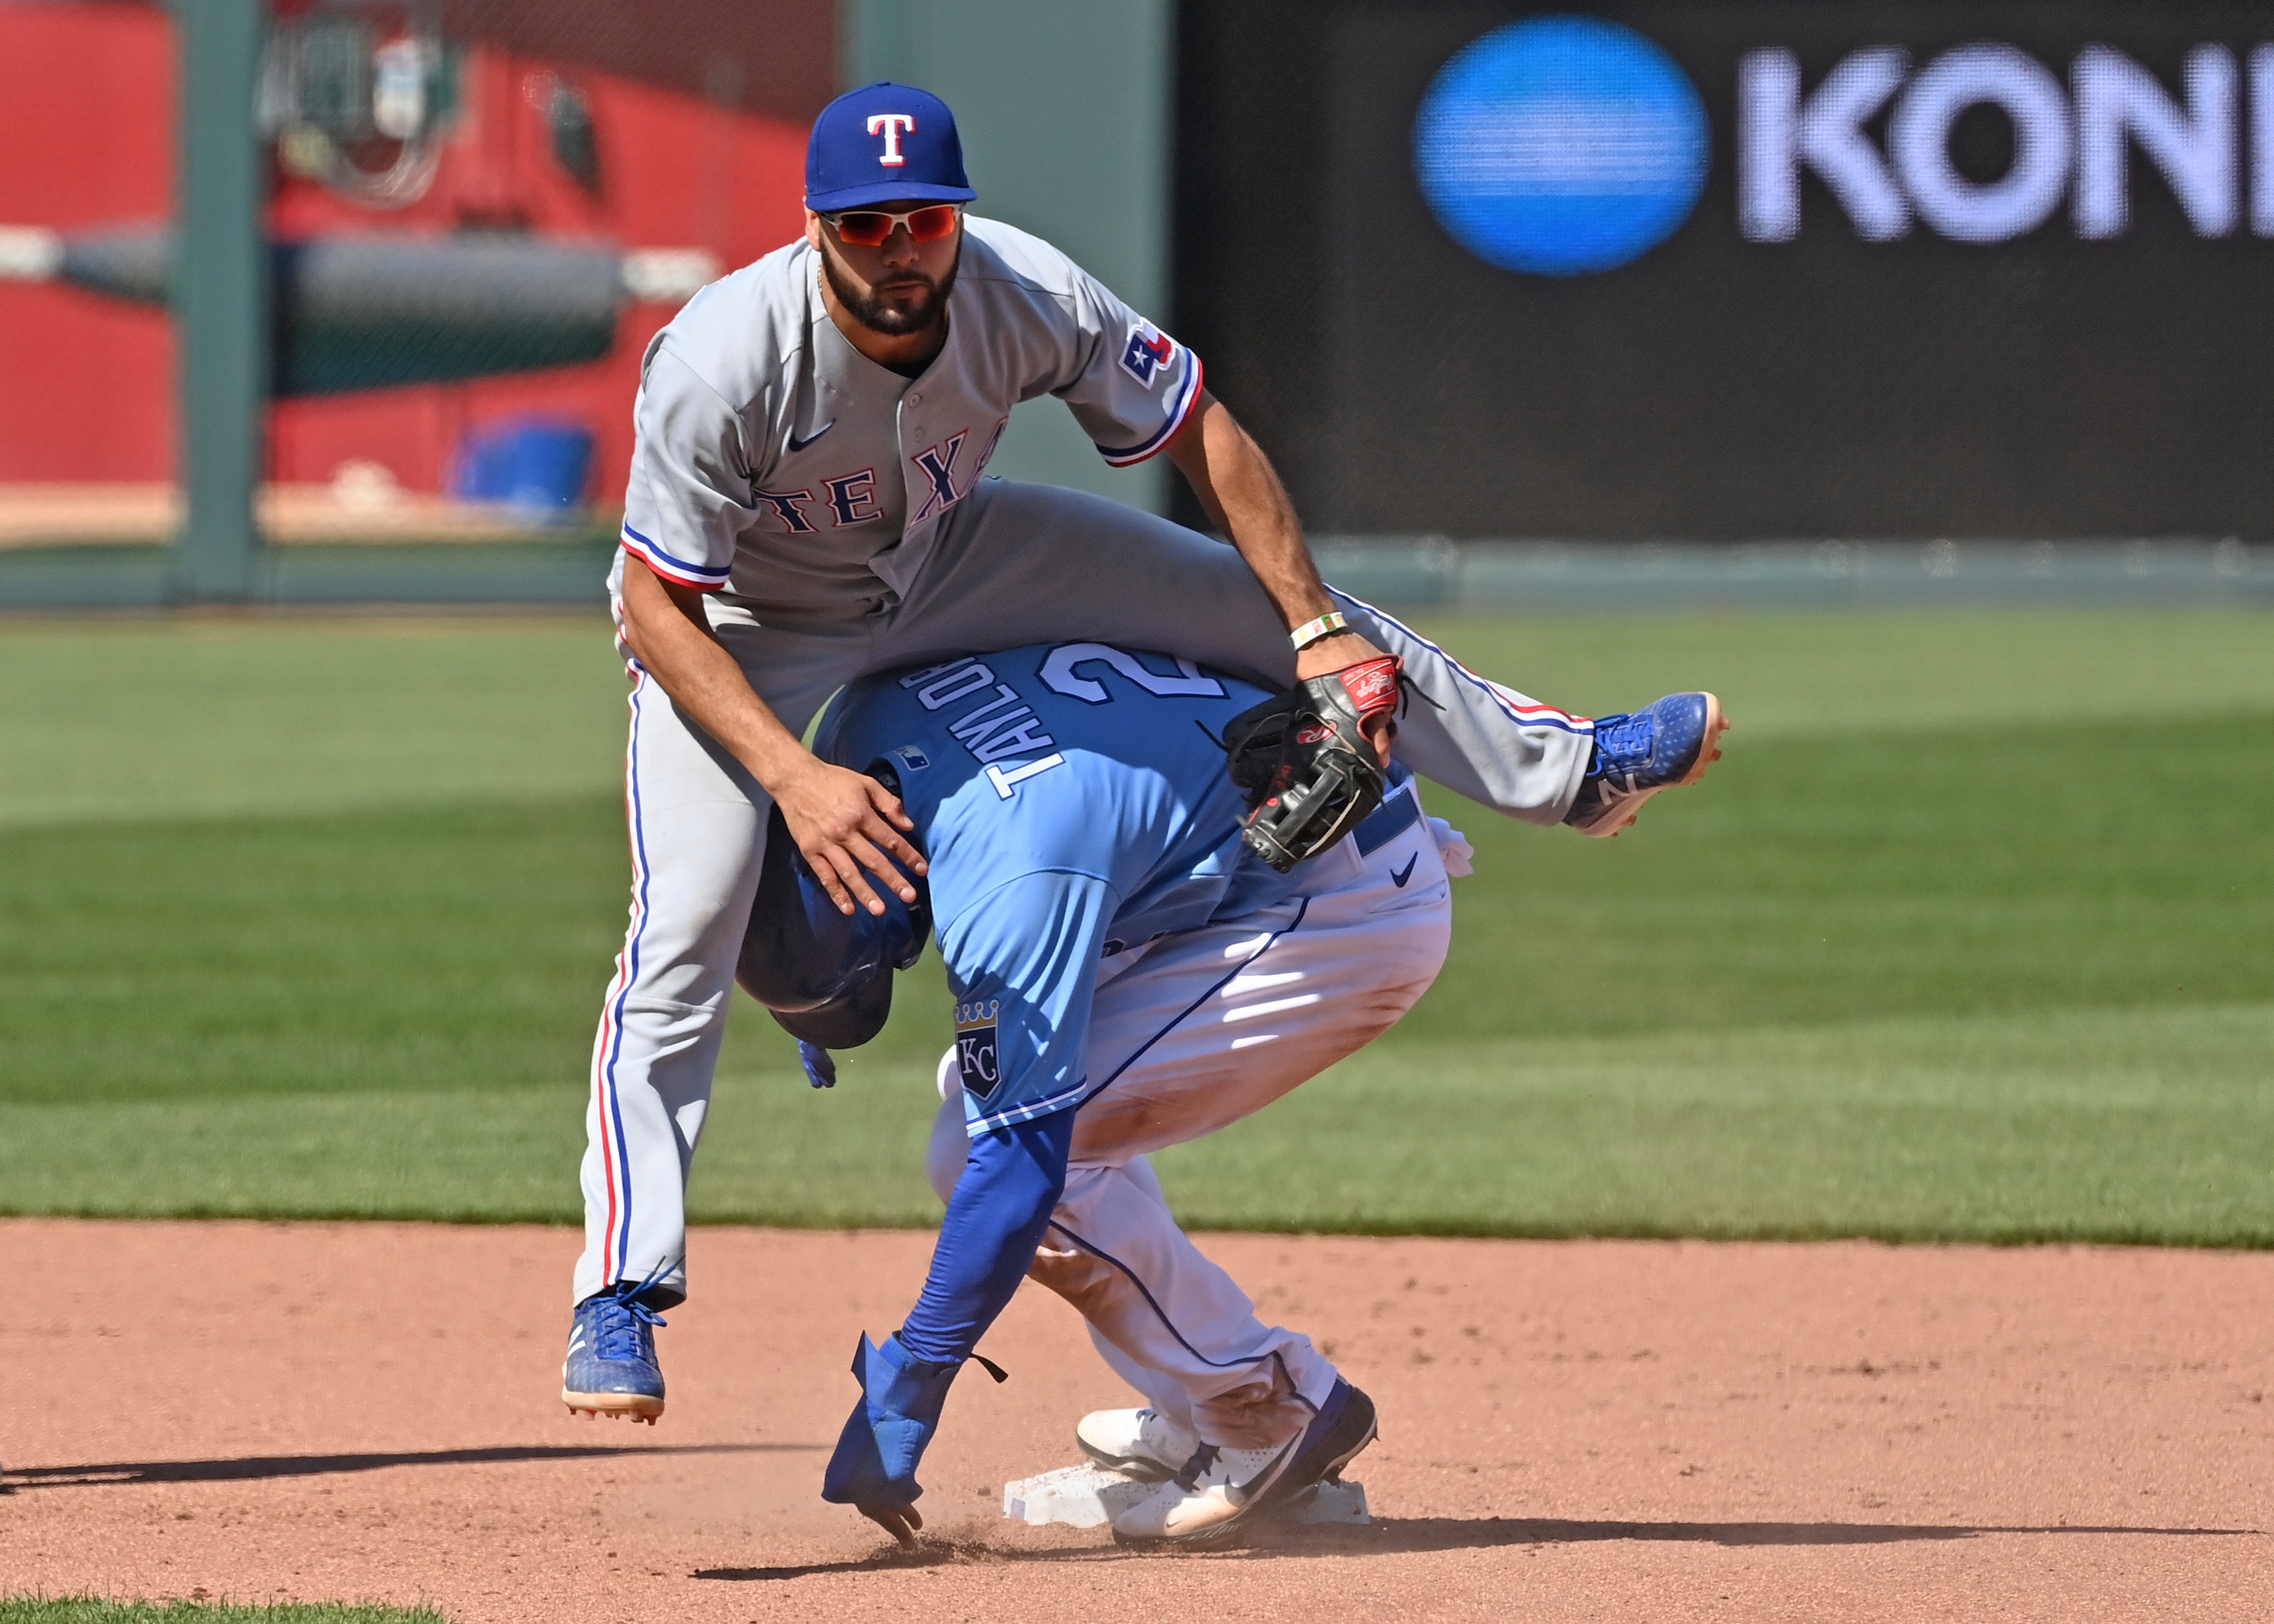 Texas Rangers short stop Isiah Kiner-Falefa (9) leaps over Kansas City Royals center fielder Michael A. Taylor (2) after forcing him out at second base during the seventh inning at Kauffman Stadium. Mandatory Credit: Peter Aiken